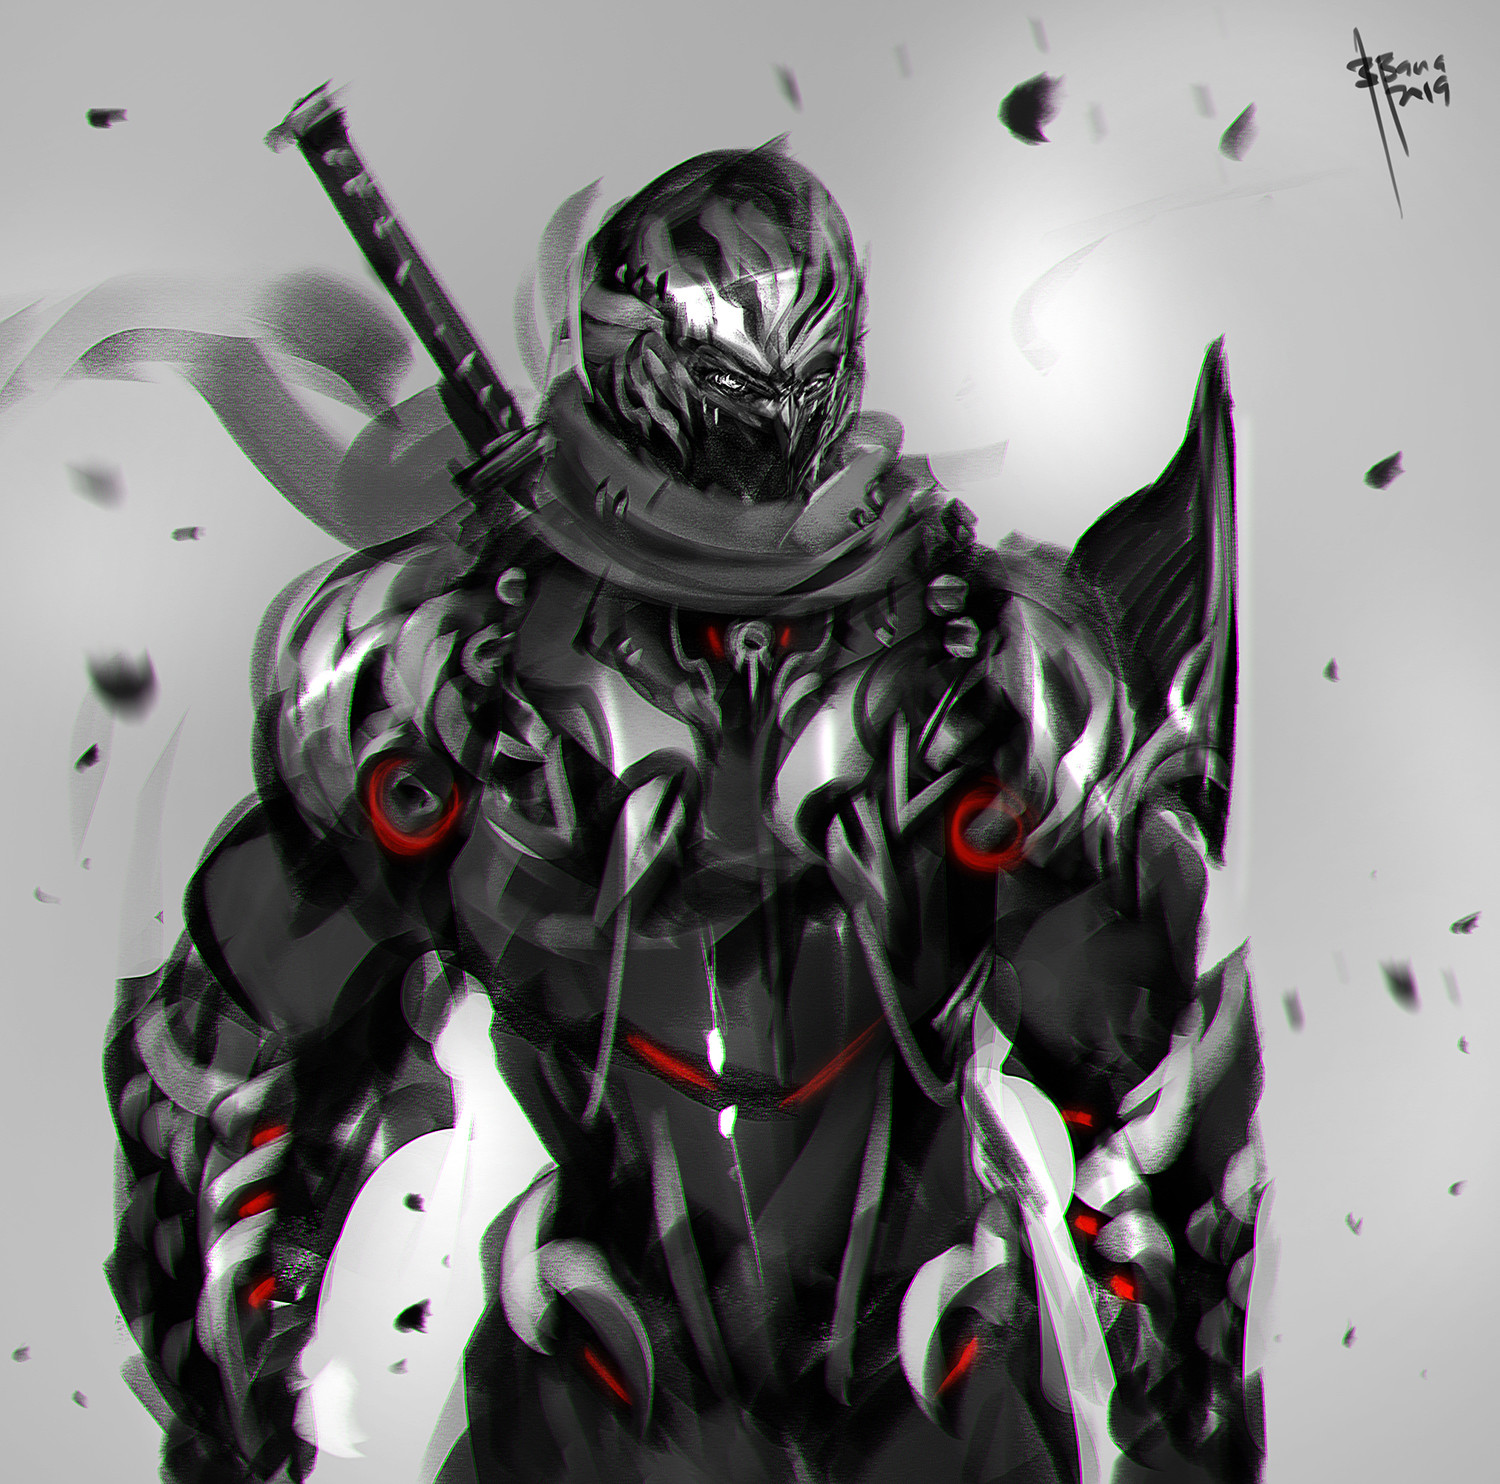 Benedick bana shinobi war aberration final lores